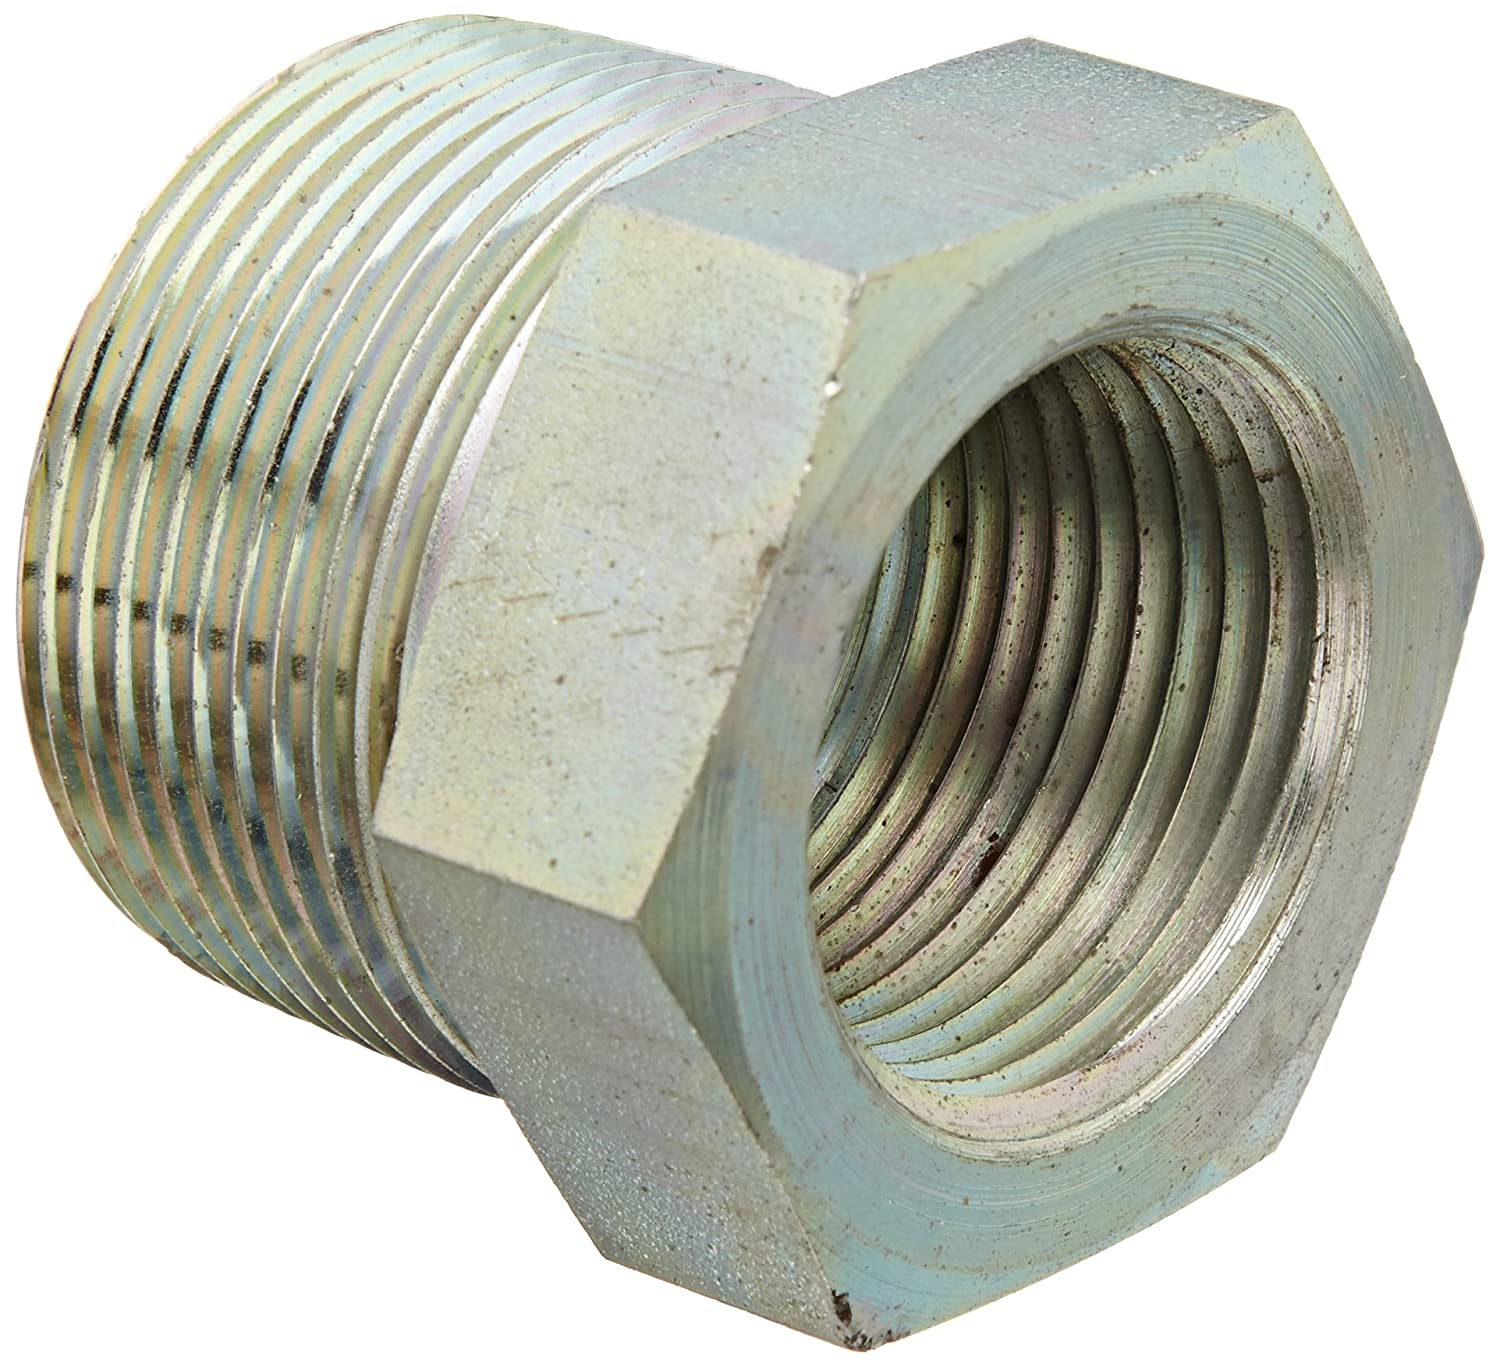 Eaton Aeroquip 2081-20-16S Steel Pipe Fitting 1-1//4 NPT Male x 1 NPT Female Bushing